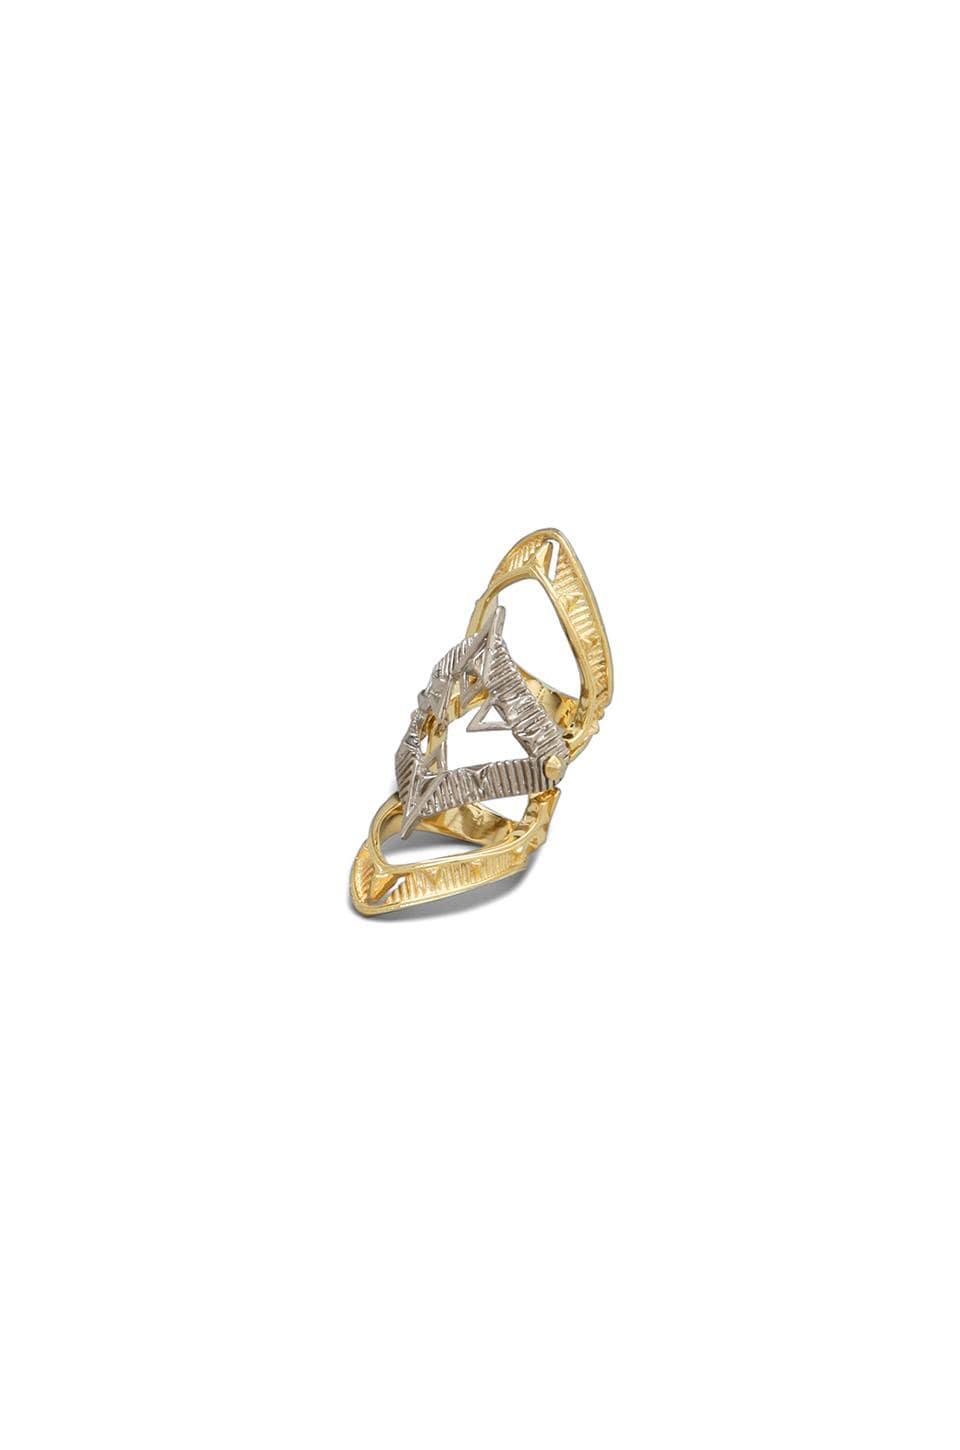 House of Harlow 1960 House of Harlow Moroccan Goum Armour Ring in Gold/Silver